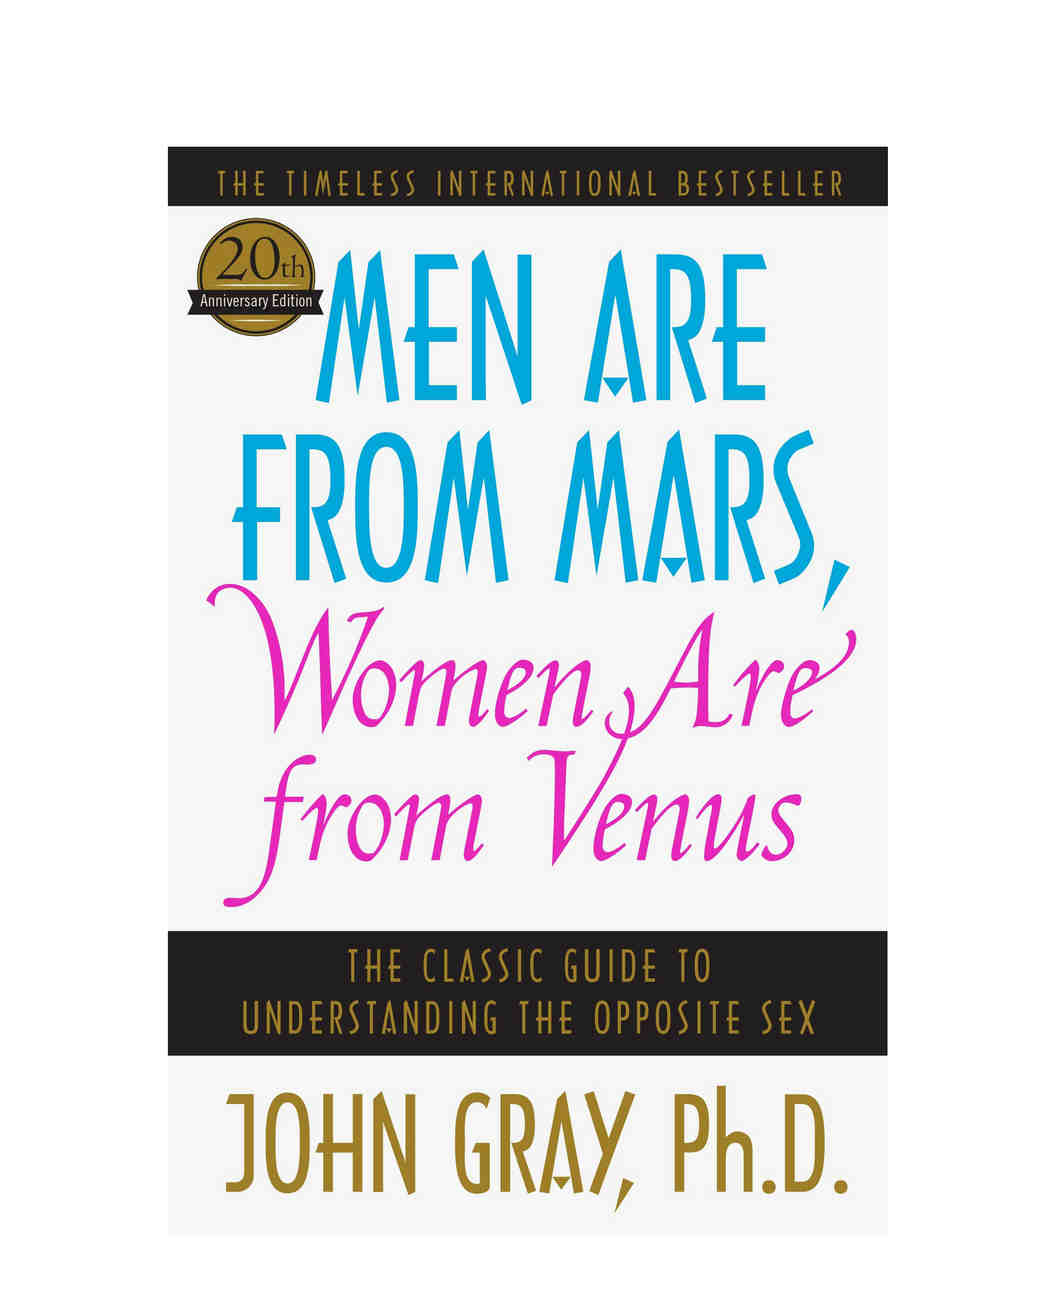 books-for-newlyweds-john-gray-men-are-from-mars-0415.jpg